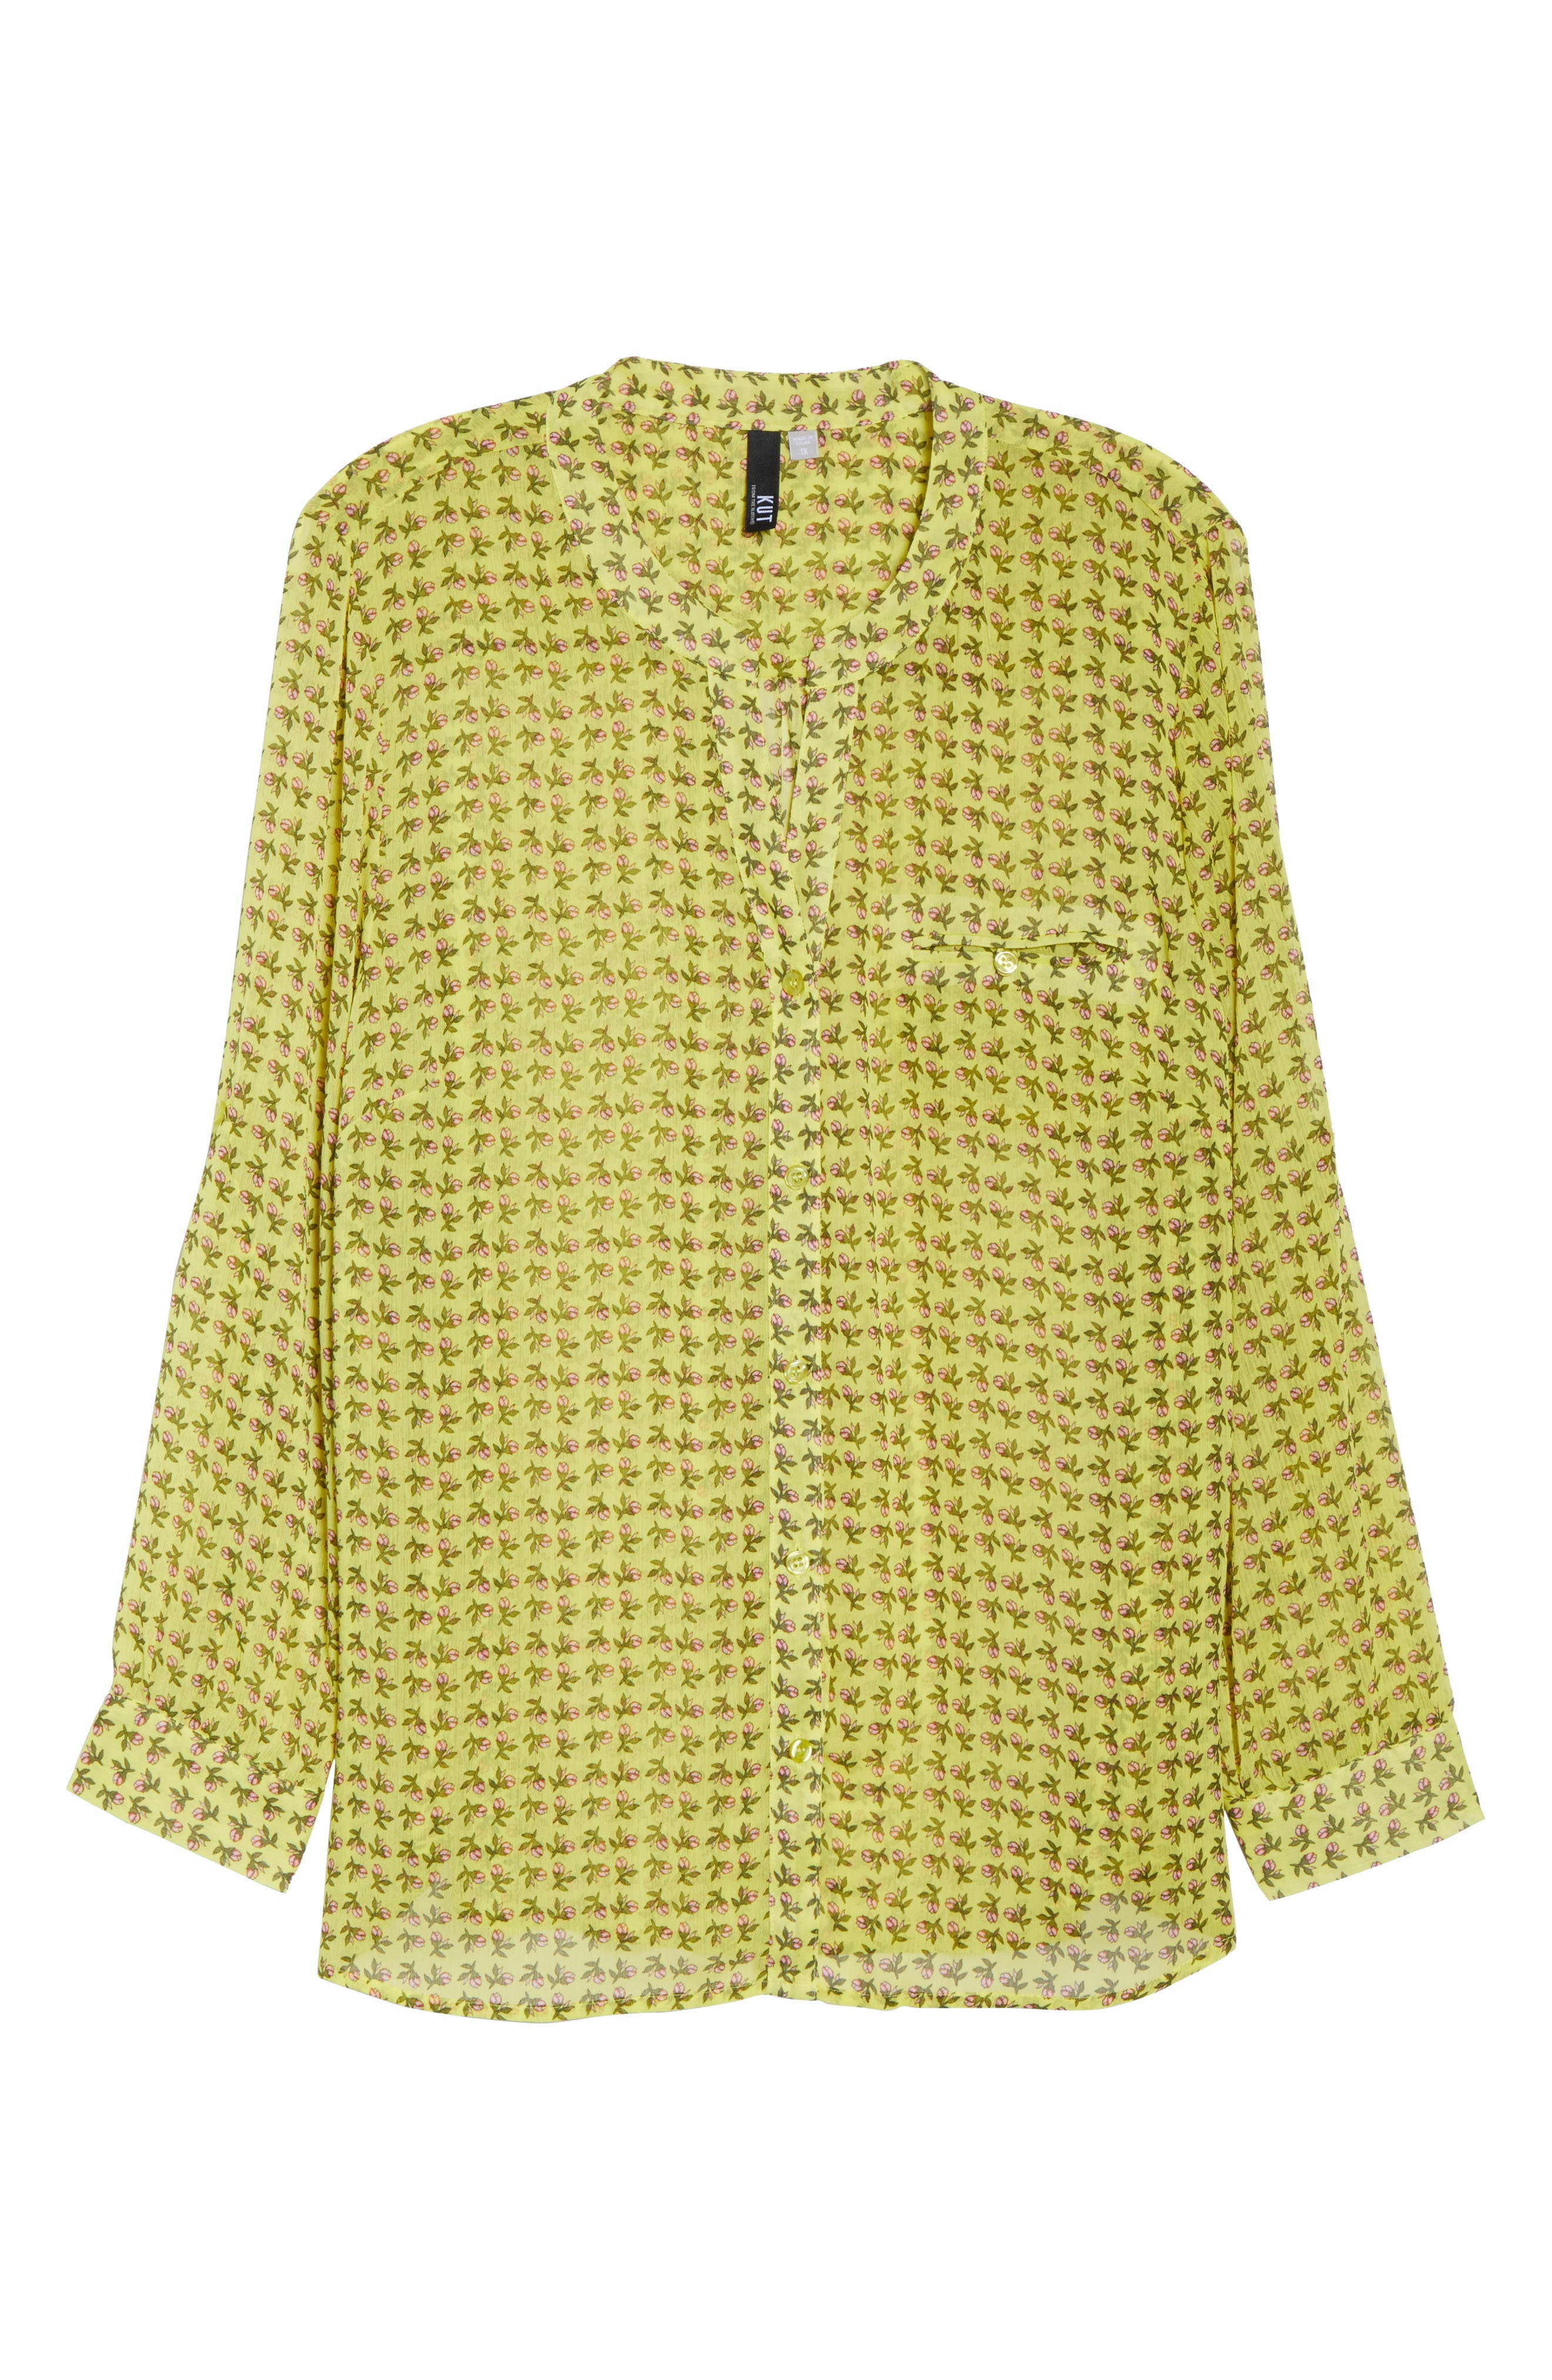 Jasmine Floral Roll Sleeve Top,                             Alternate thumbnail 7, color,                             Bright Yellow